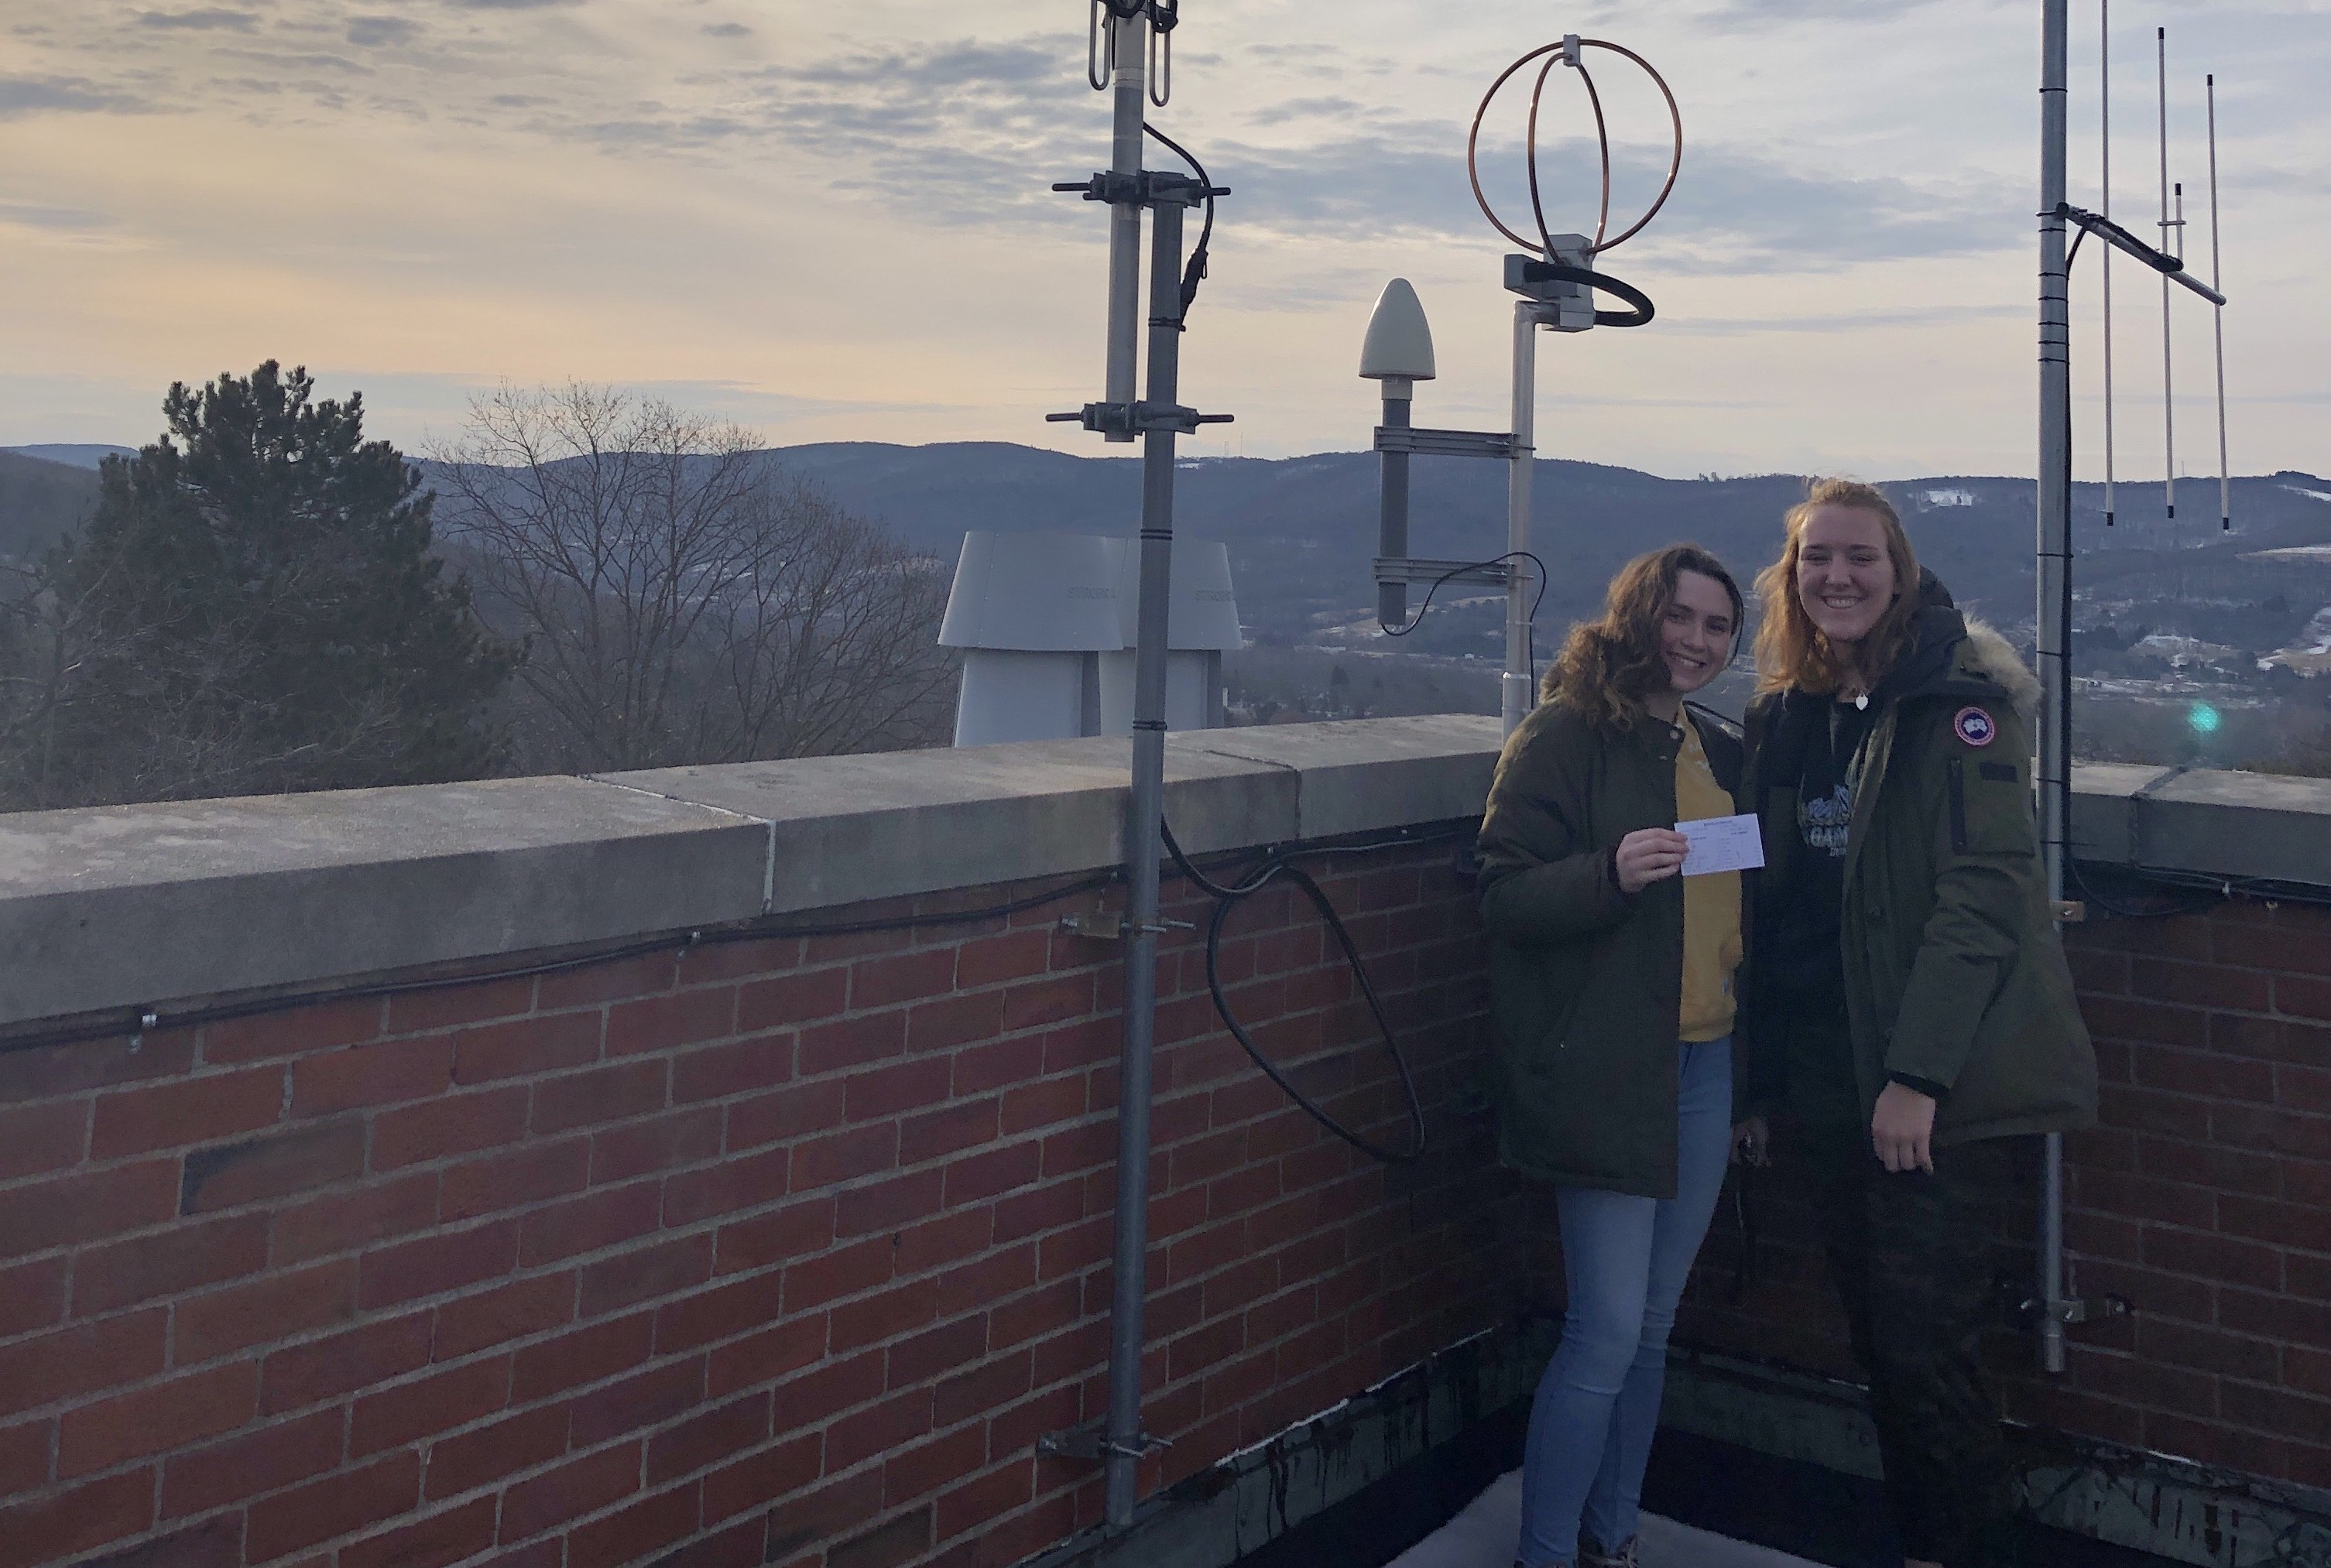 Meteorology majors collecting weather data from the rooftop weather station